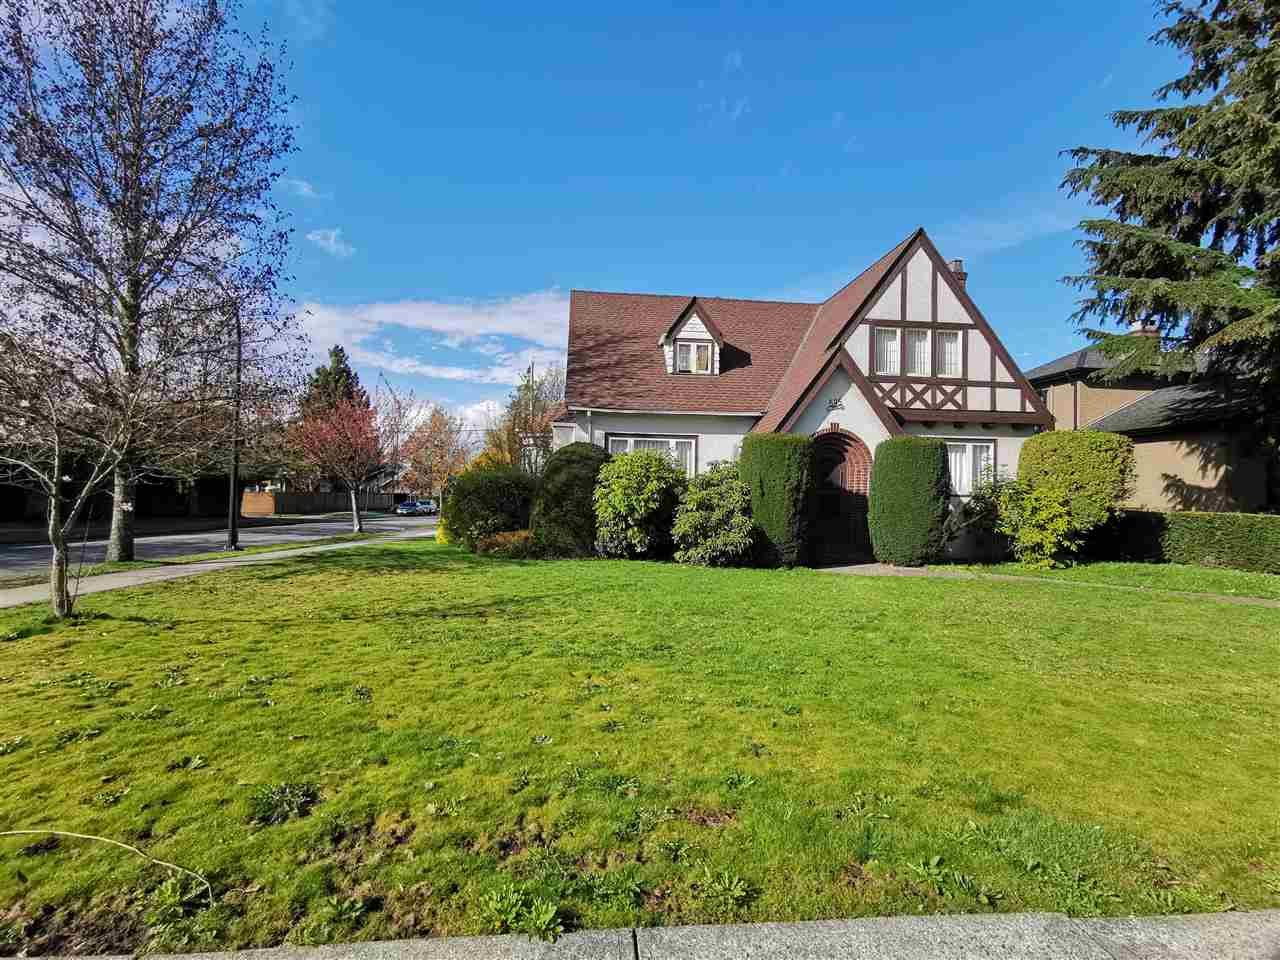 595 W 28TH AVENUE - Cambie House/Single Family for sale, 4 Bedrooms (R2357773) - #1